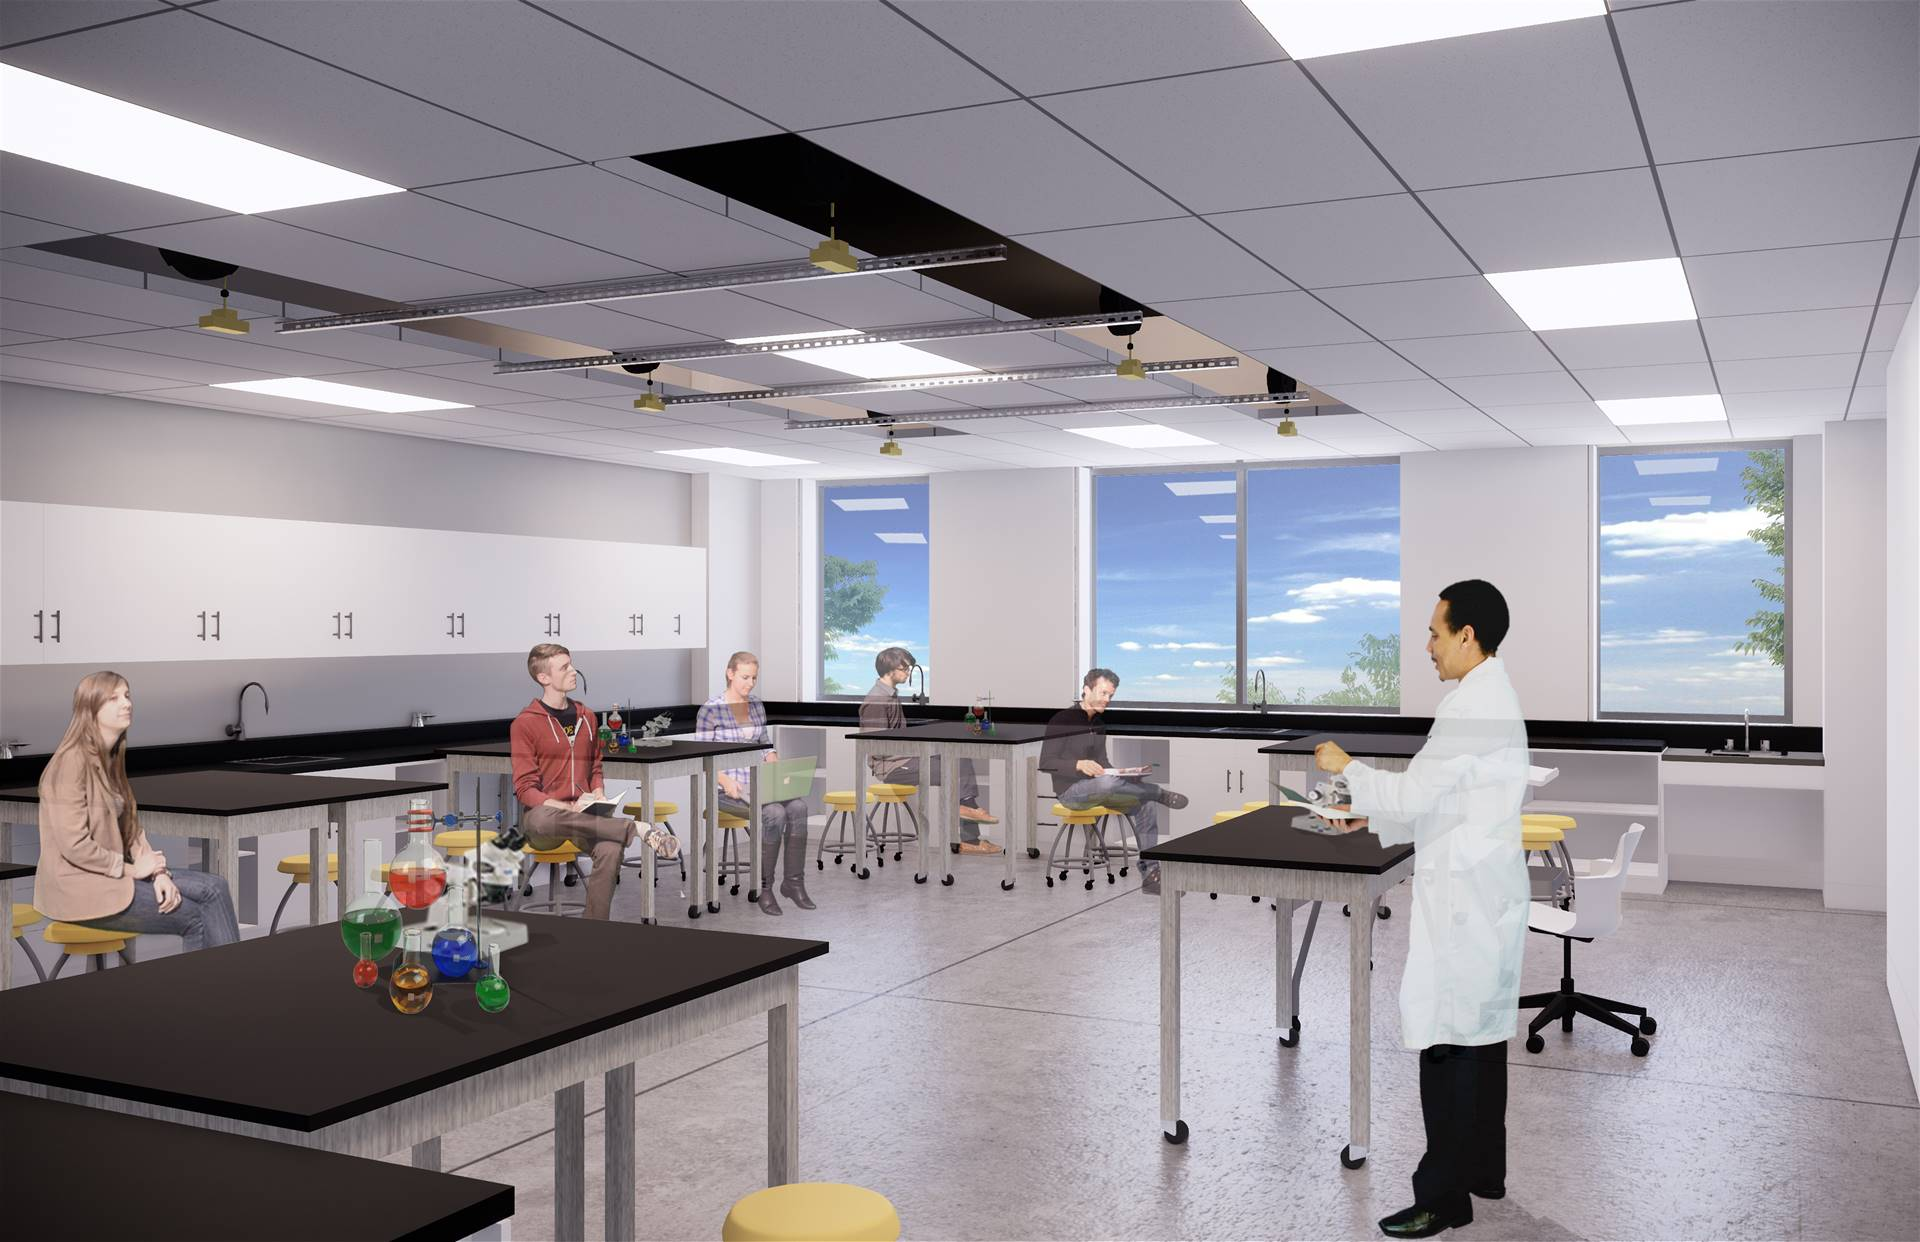 A rendering of a science studio classroom